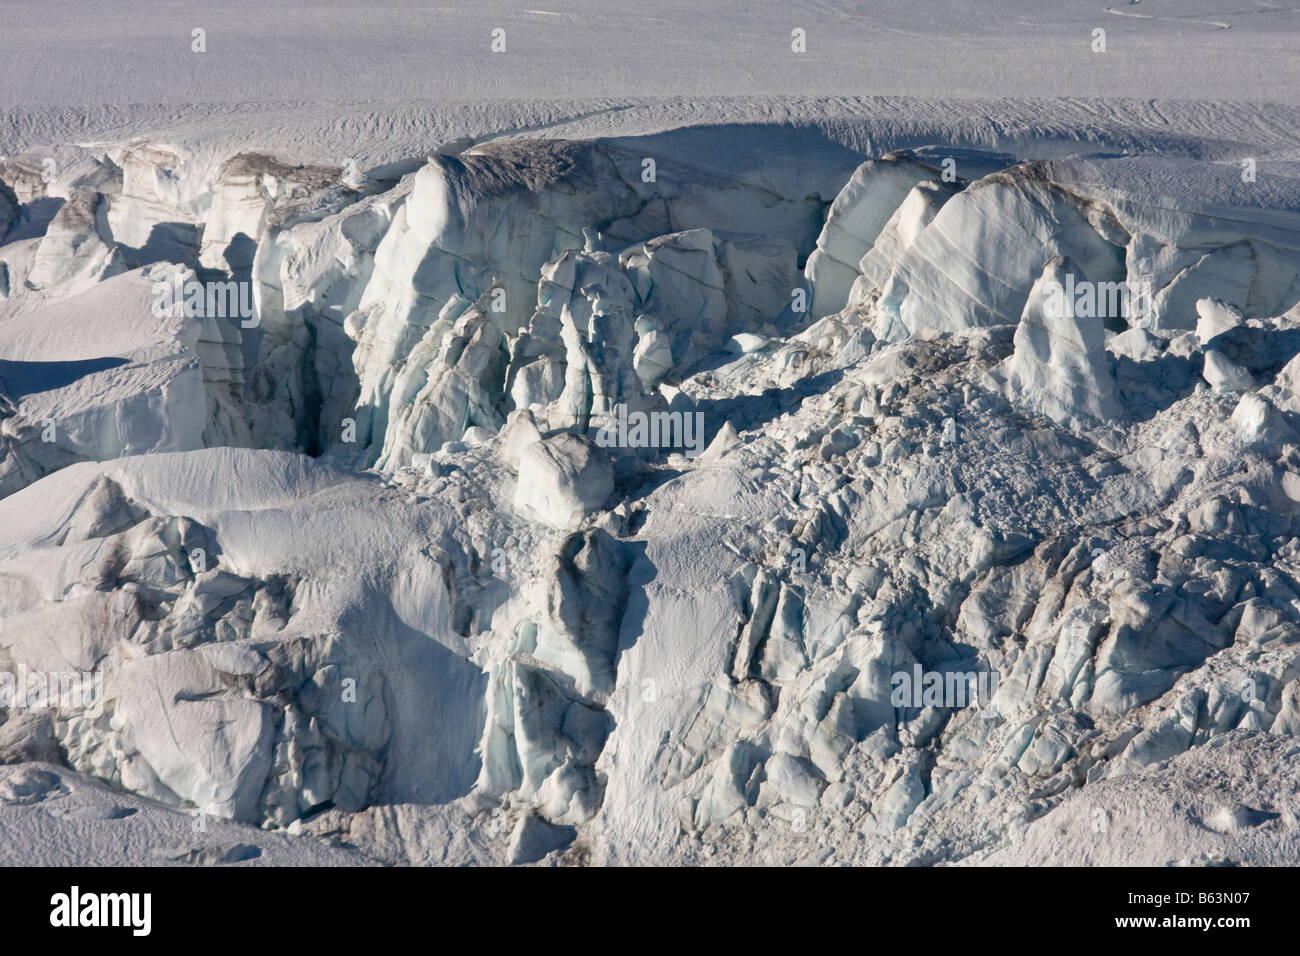 An icefall on the Easton Glacier of Mount Baker in the Mount Baker Recreation Area North Cascades Washington - Stock Image